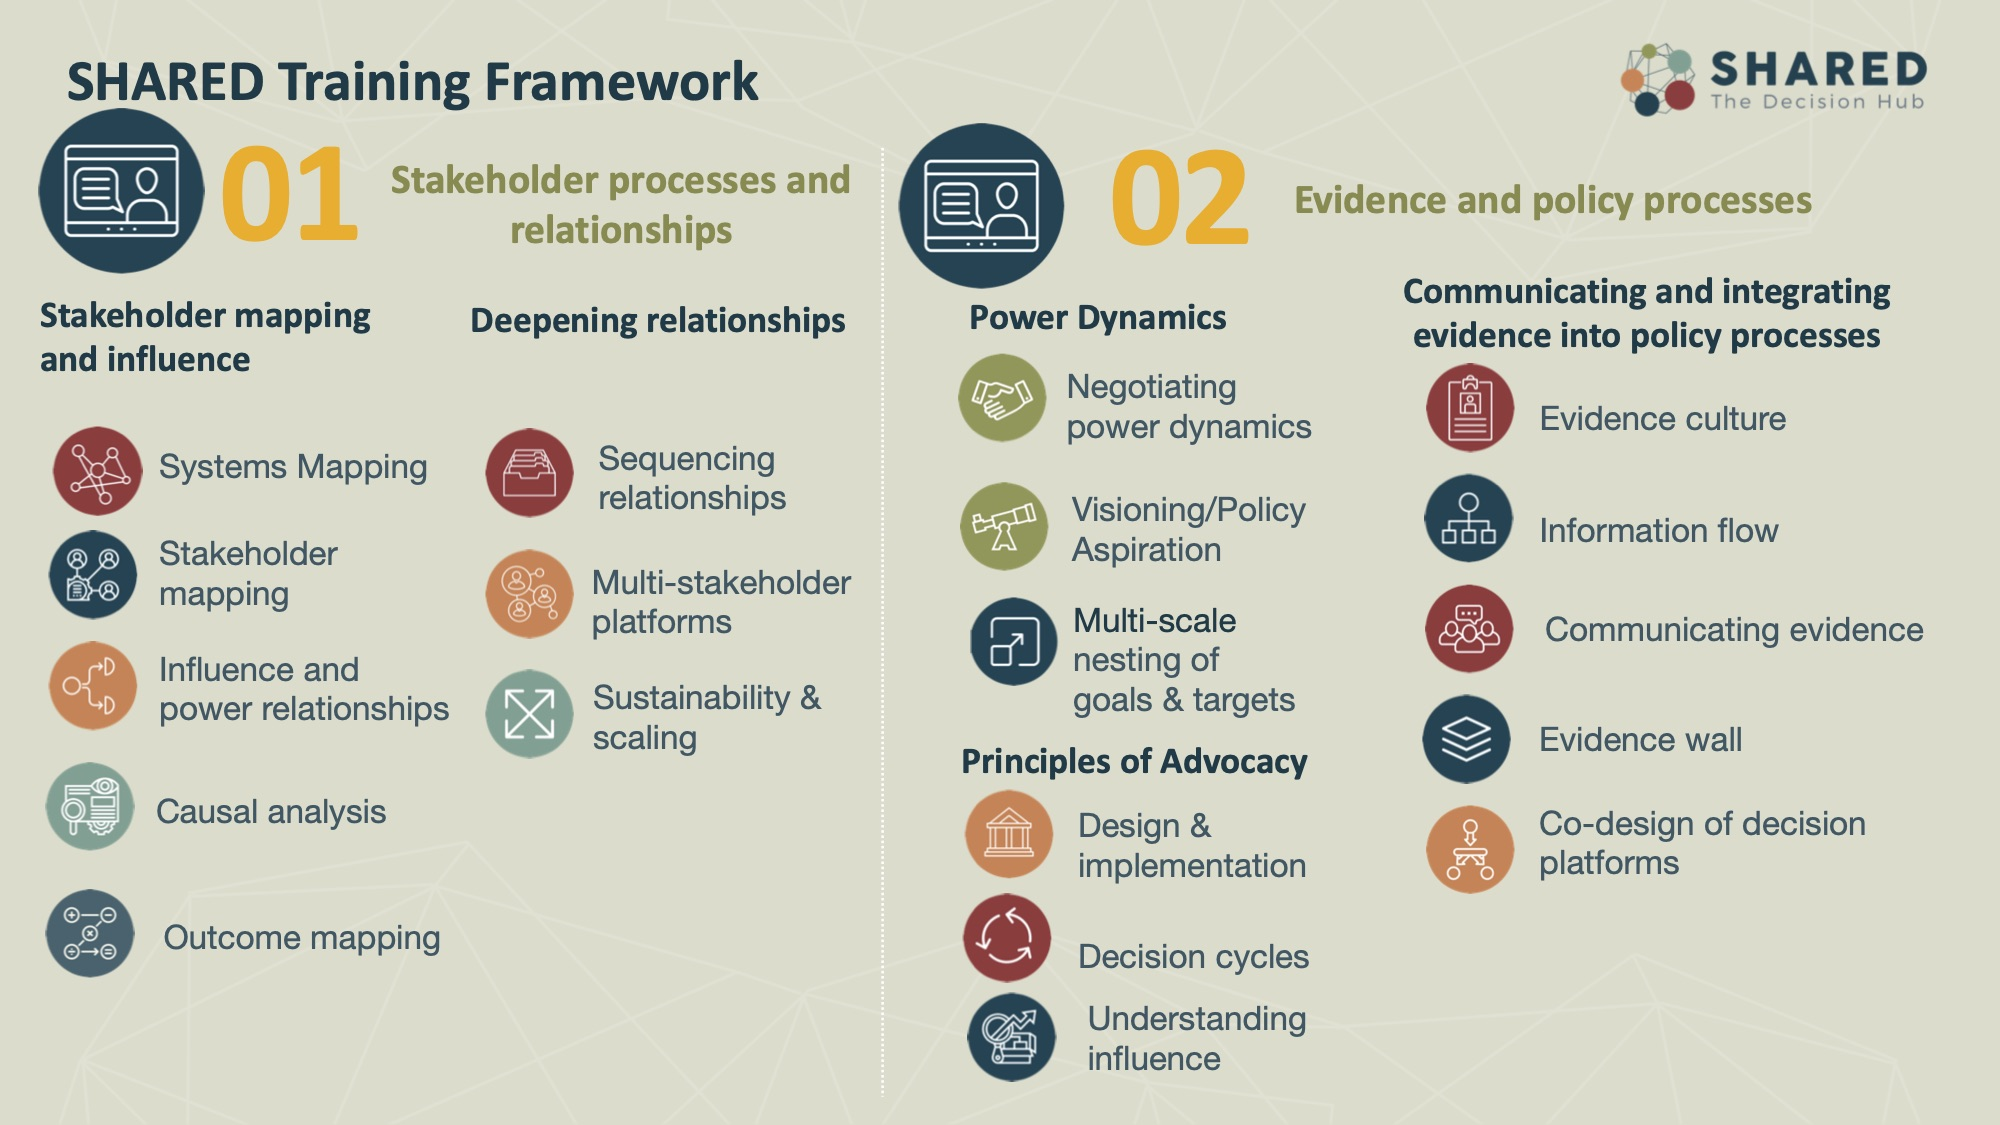 The training framework for Webinar 1 and Webinar 2 was developed to reflect the needs that were articulated during the consultation process with RFS country project teams.